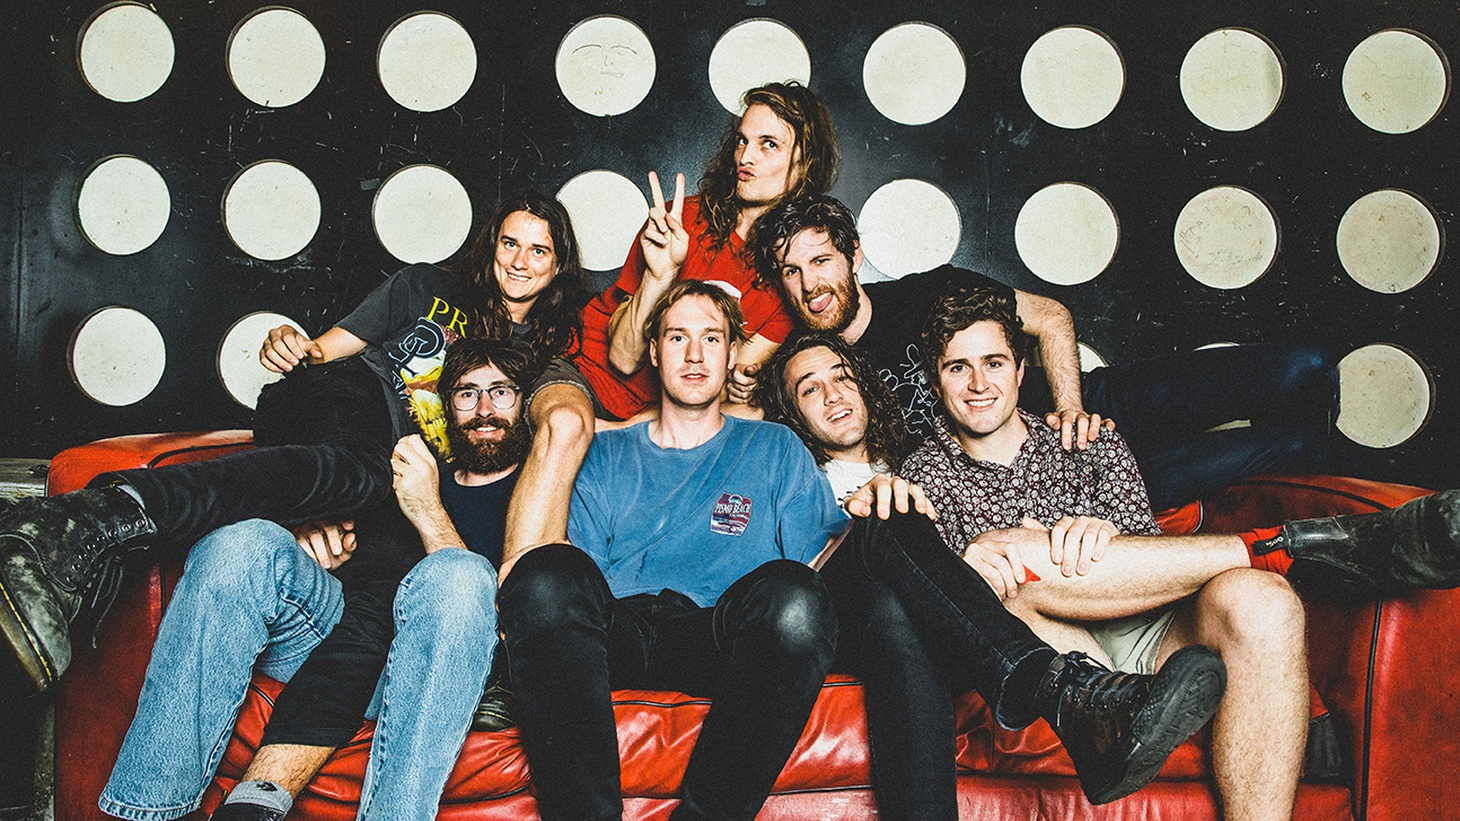 Sounding like a cross between Jethro Tull and the Flaming Lips on the set of the mid-70's kids show The Wombles, King Gizzard & the Lizard Wizard are authentic miners of retro gold, while never resorting to camp.